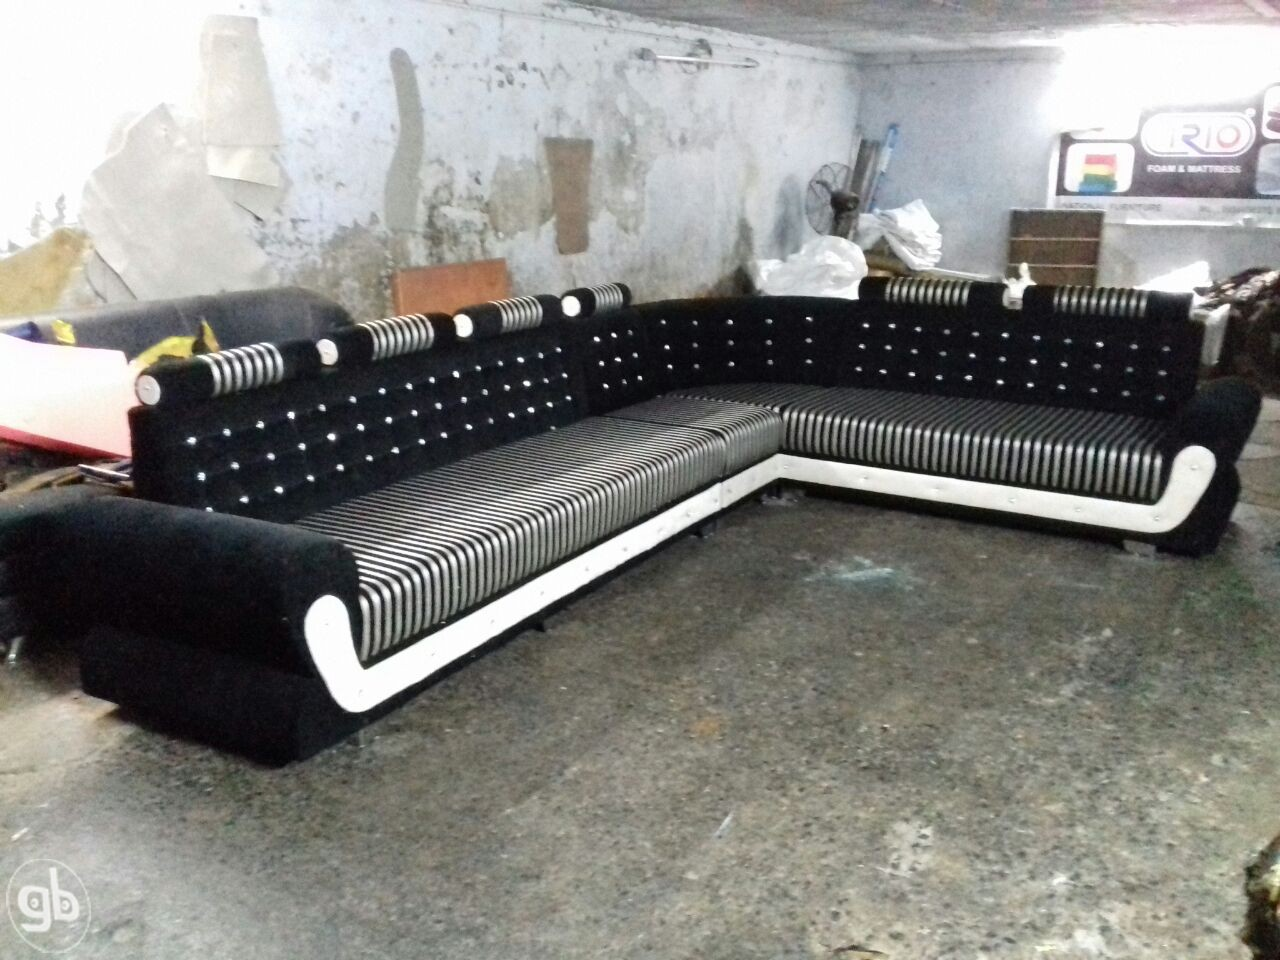 Sofa Set Price Ahmedabad Gujjubazar Free Classified In Gujarat Classified Ads In